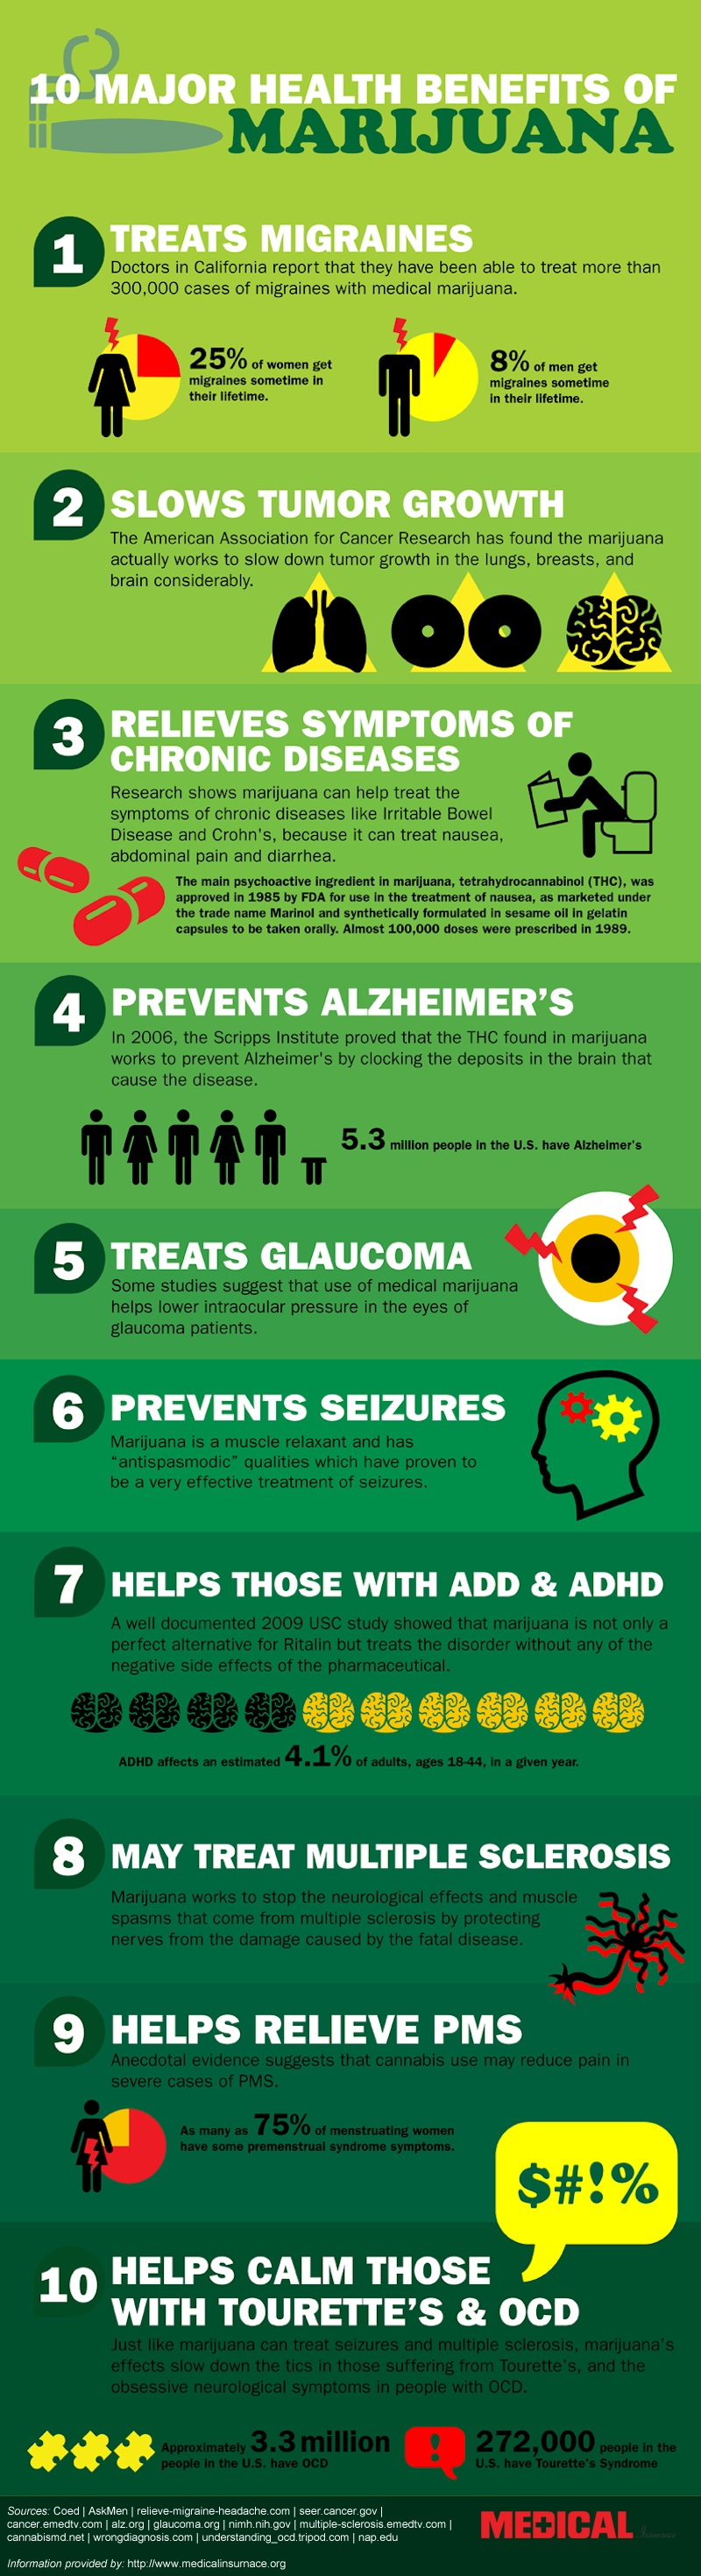 10 major health benefits from cannabis